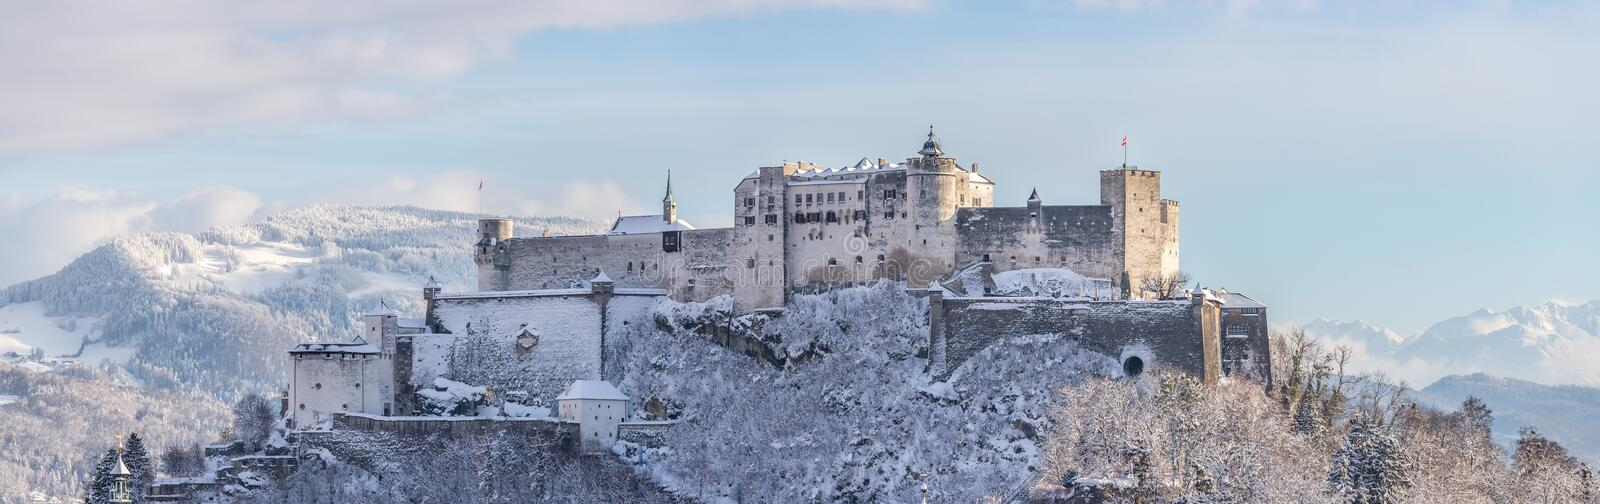 Fortress Hohensalzburg in the Winter, snowy. Landmark tourism europe travel frost landscape vacation medieval magic historic old panorama architecture austria royalty free stock photos